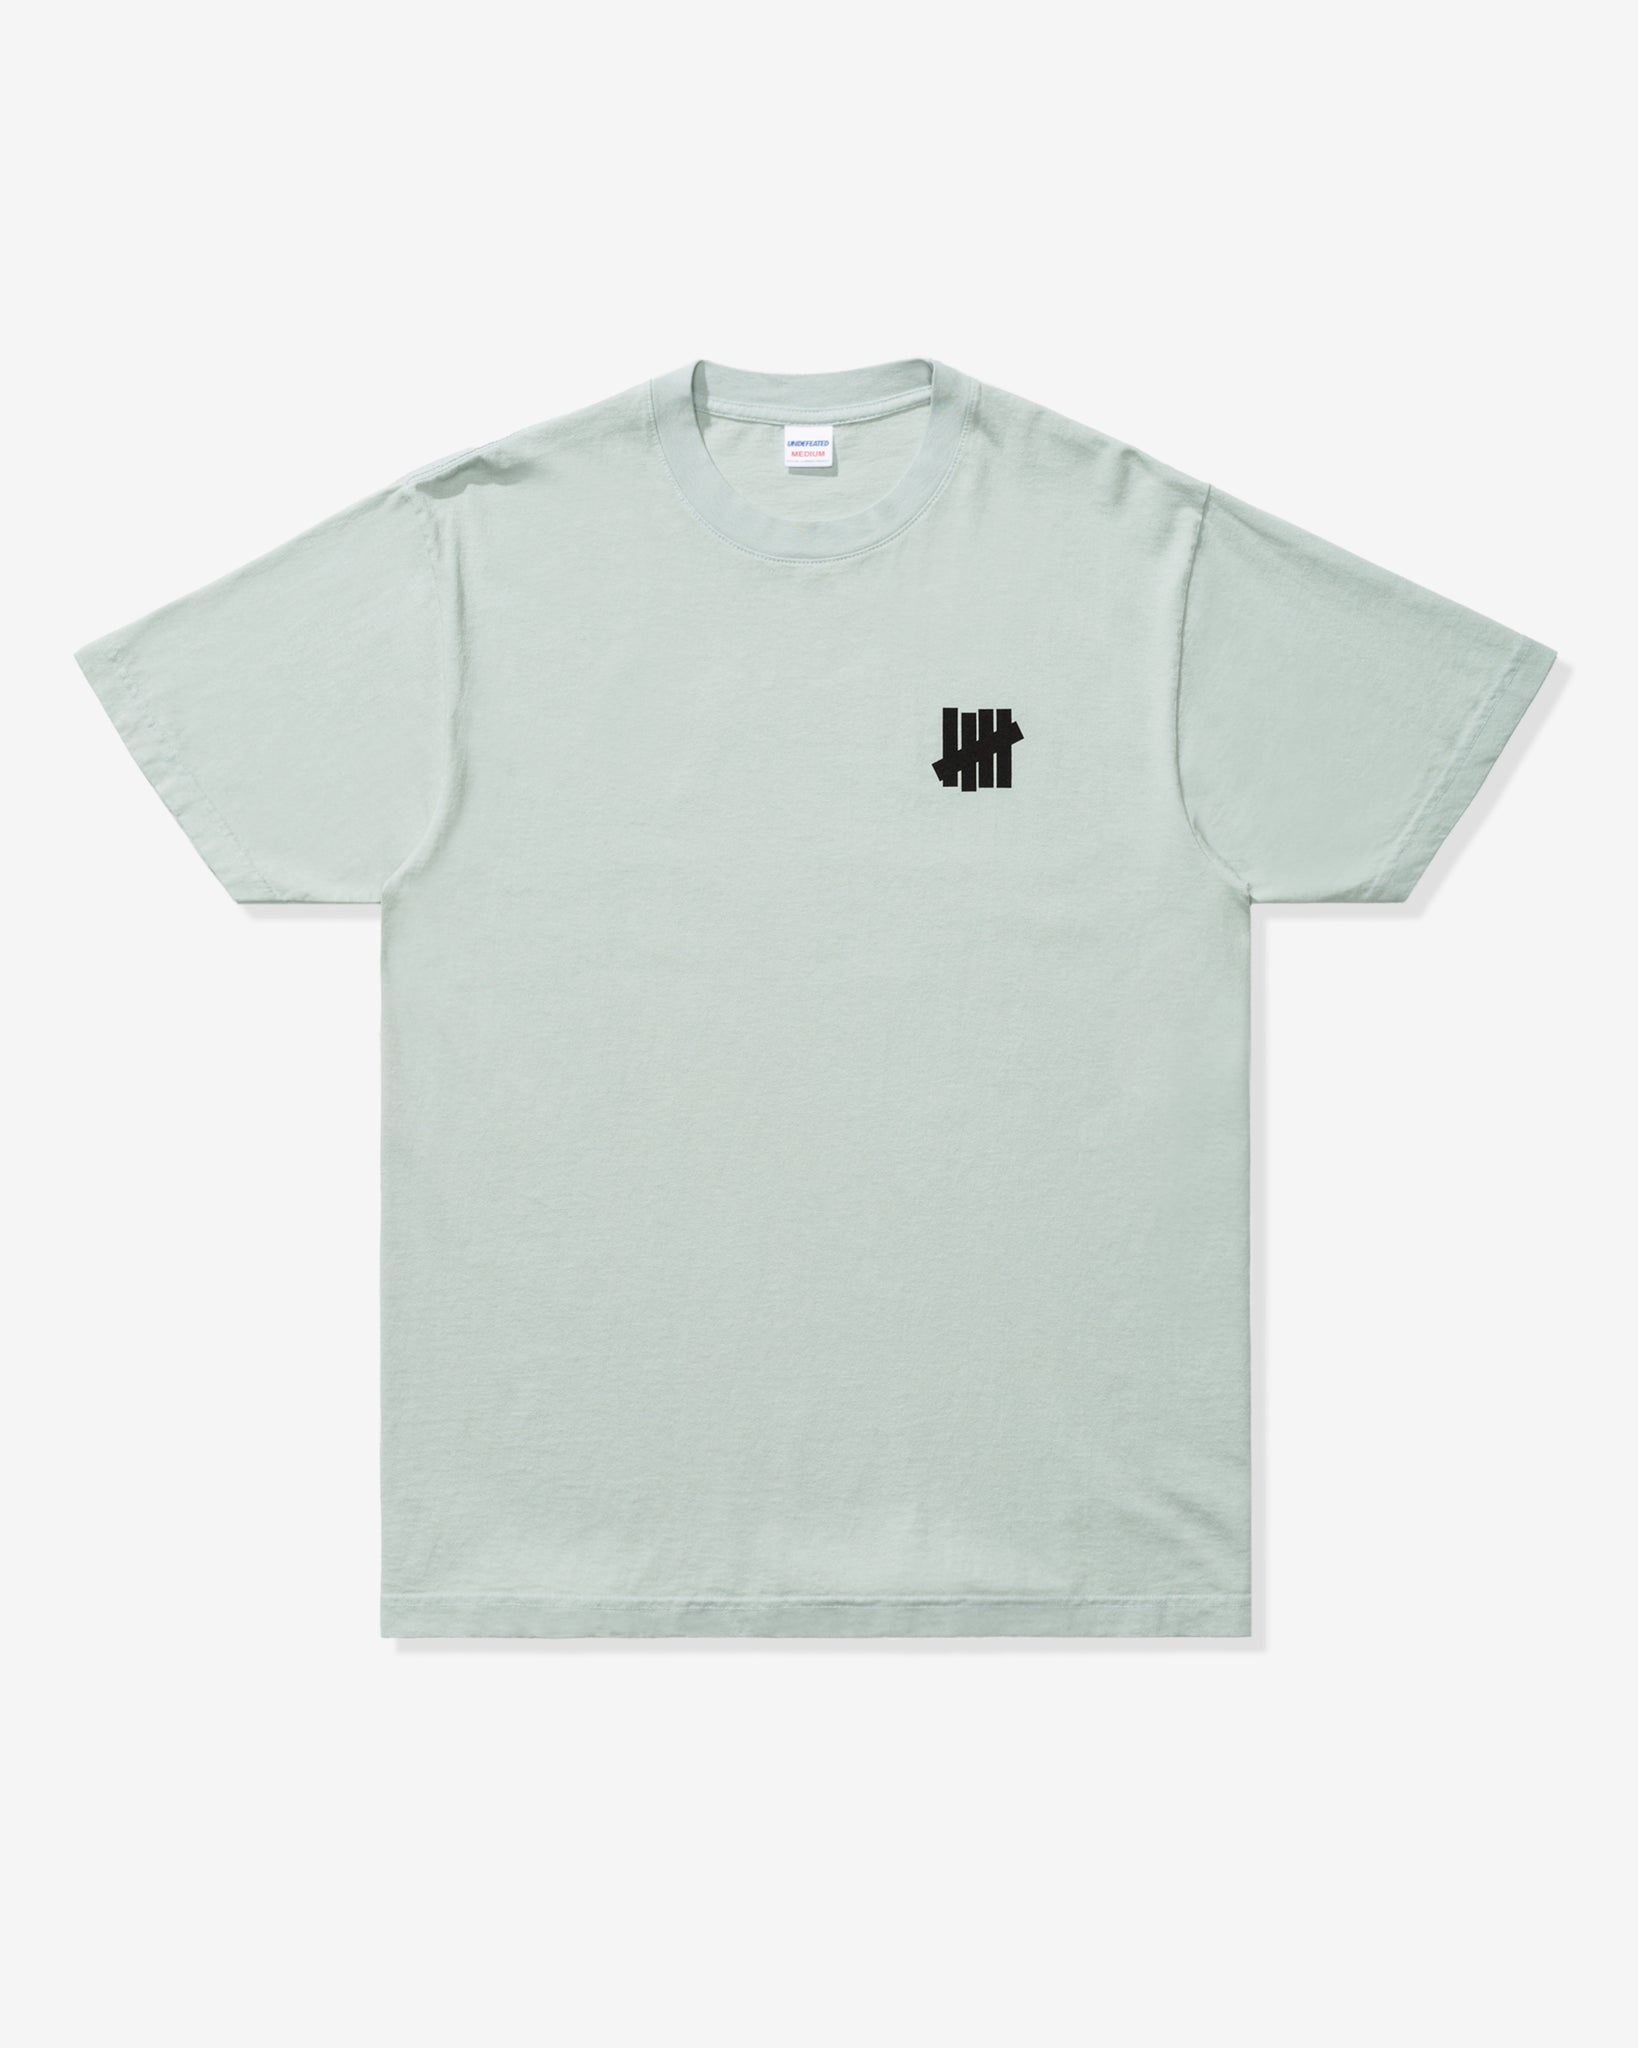 UNDEFEATED THIEF S/S TEE